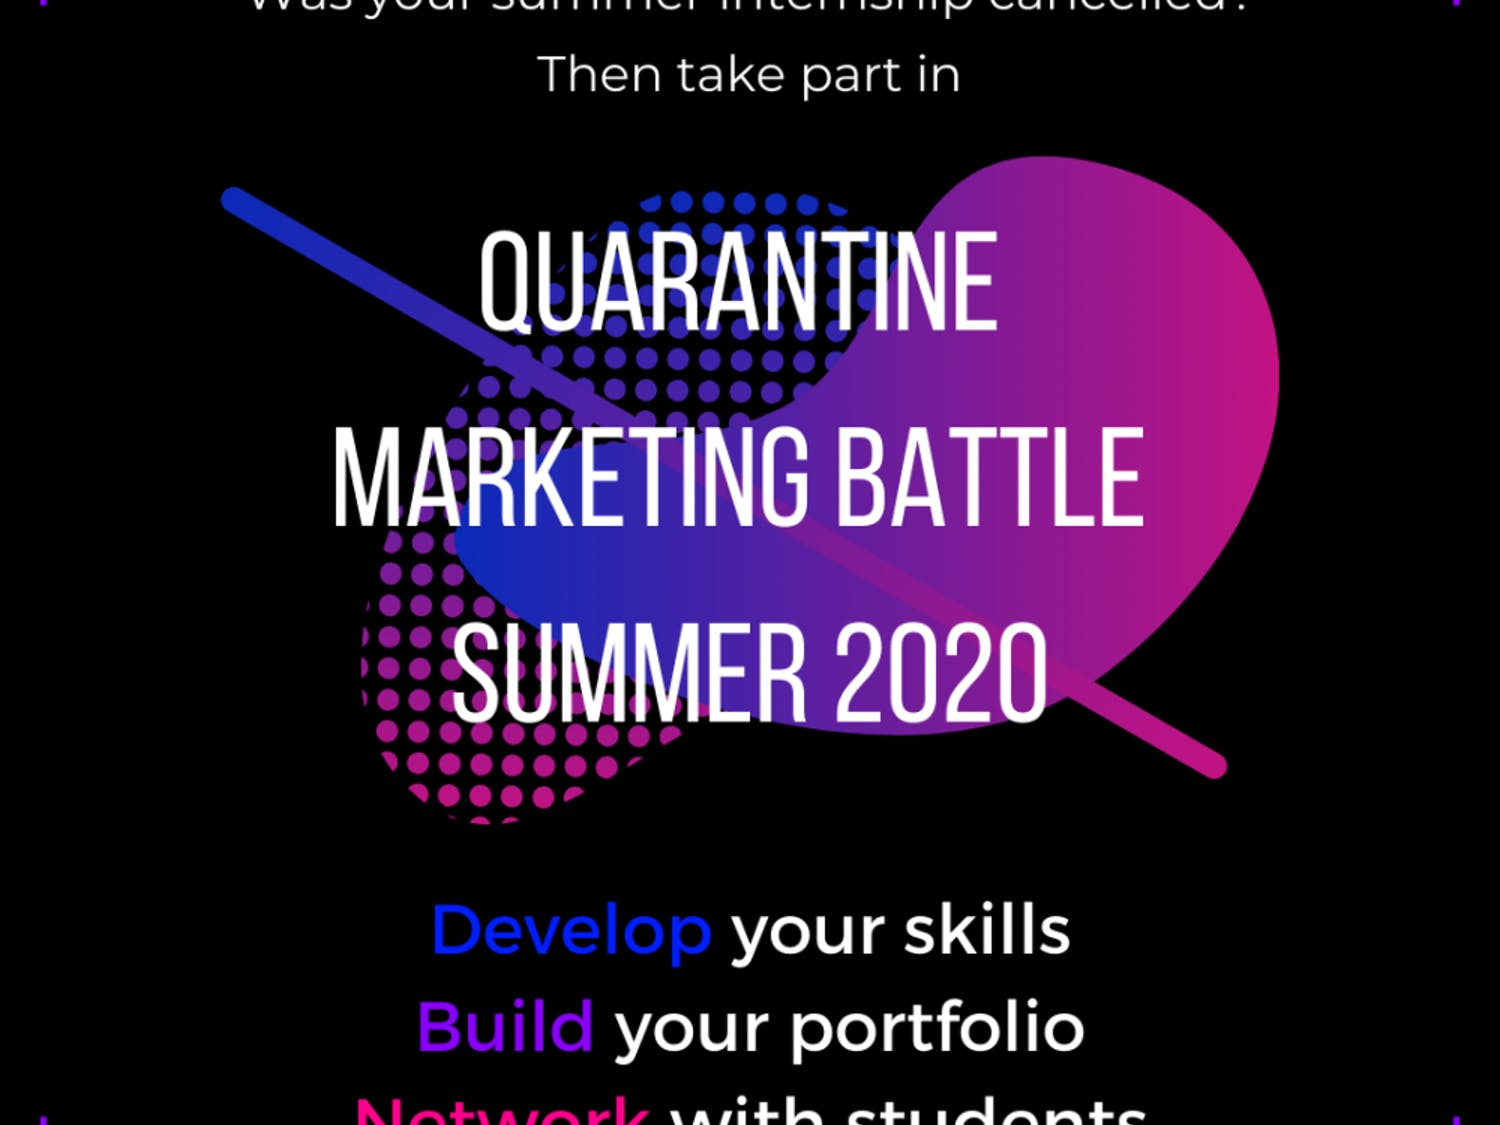 UF senior Danielle Gray created the Quarantine Marketing Battle to provide an immersive opportunity to those without Summer internships.